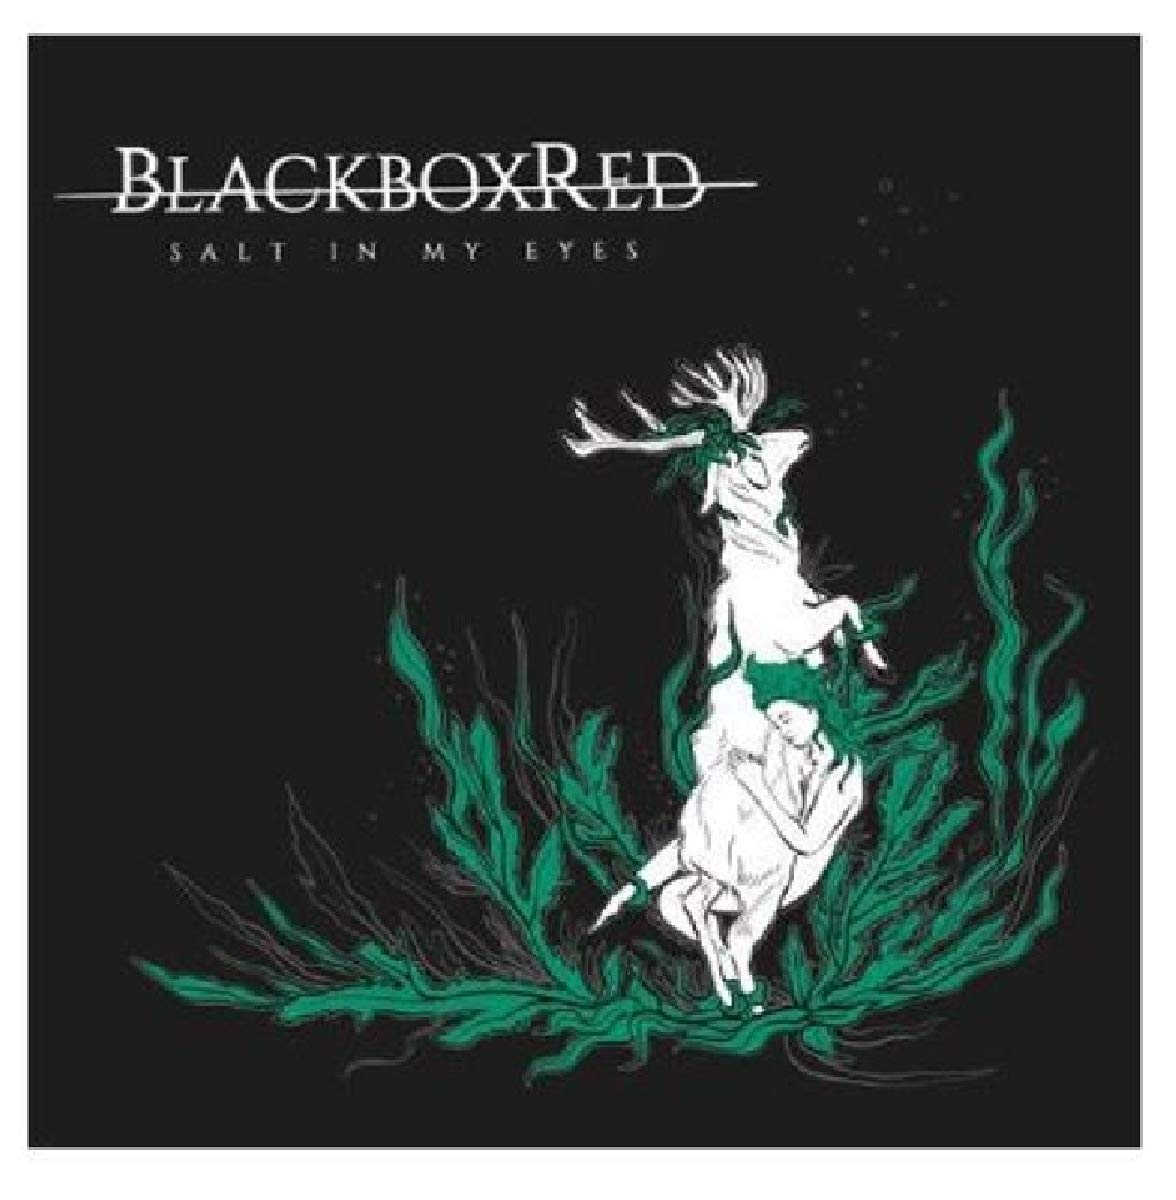 Vinilo : Blackboxred - Salt In My Eyes (Green, White, Black)